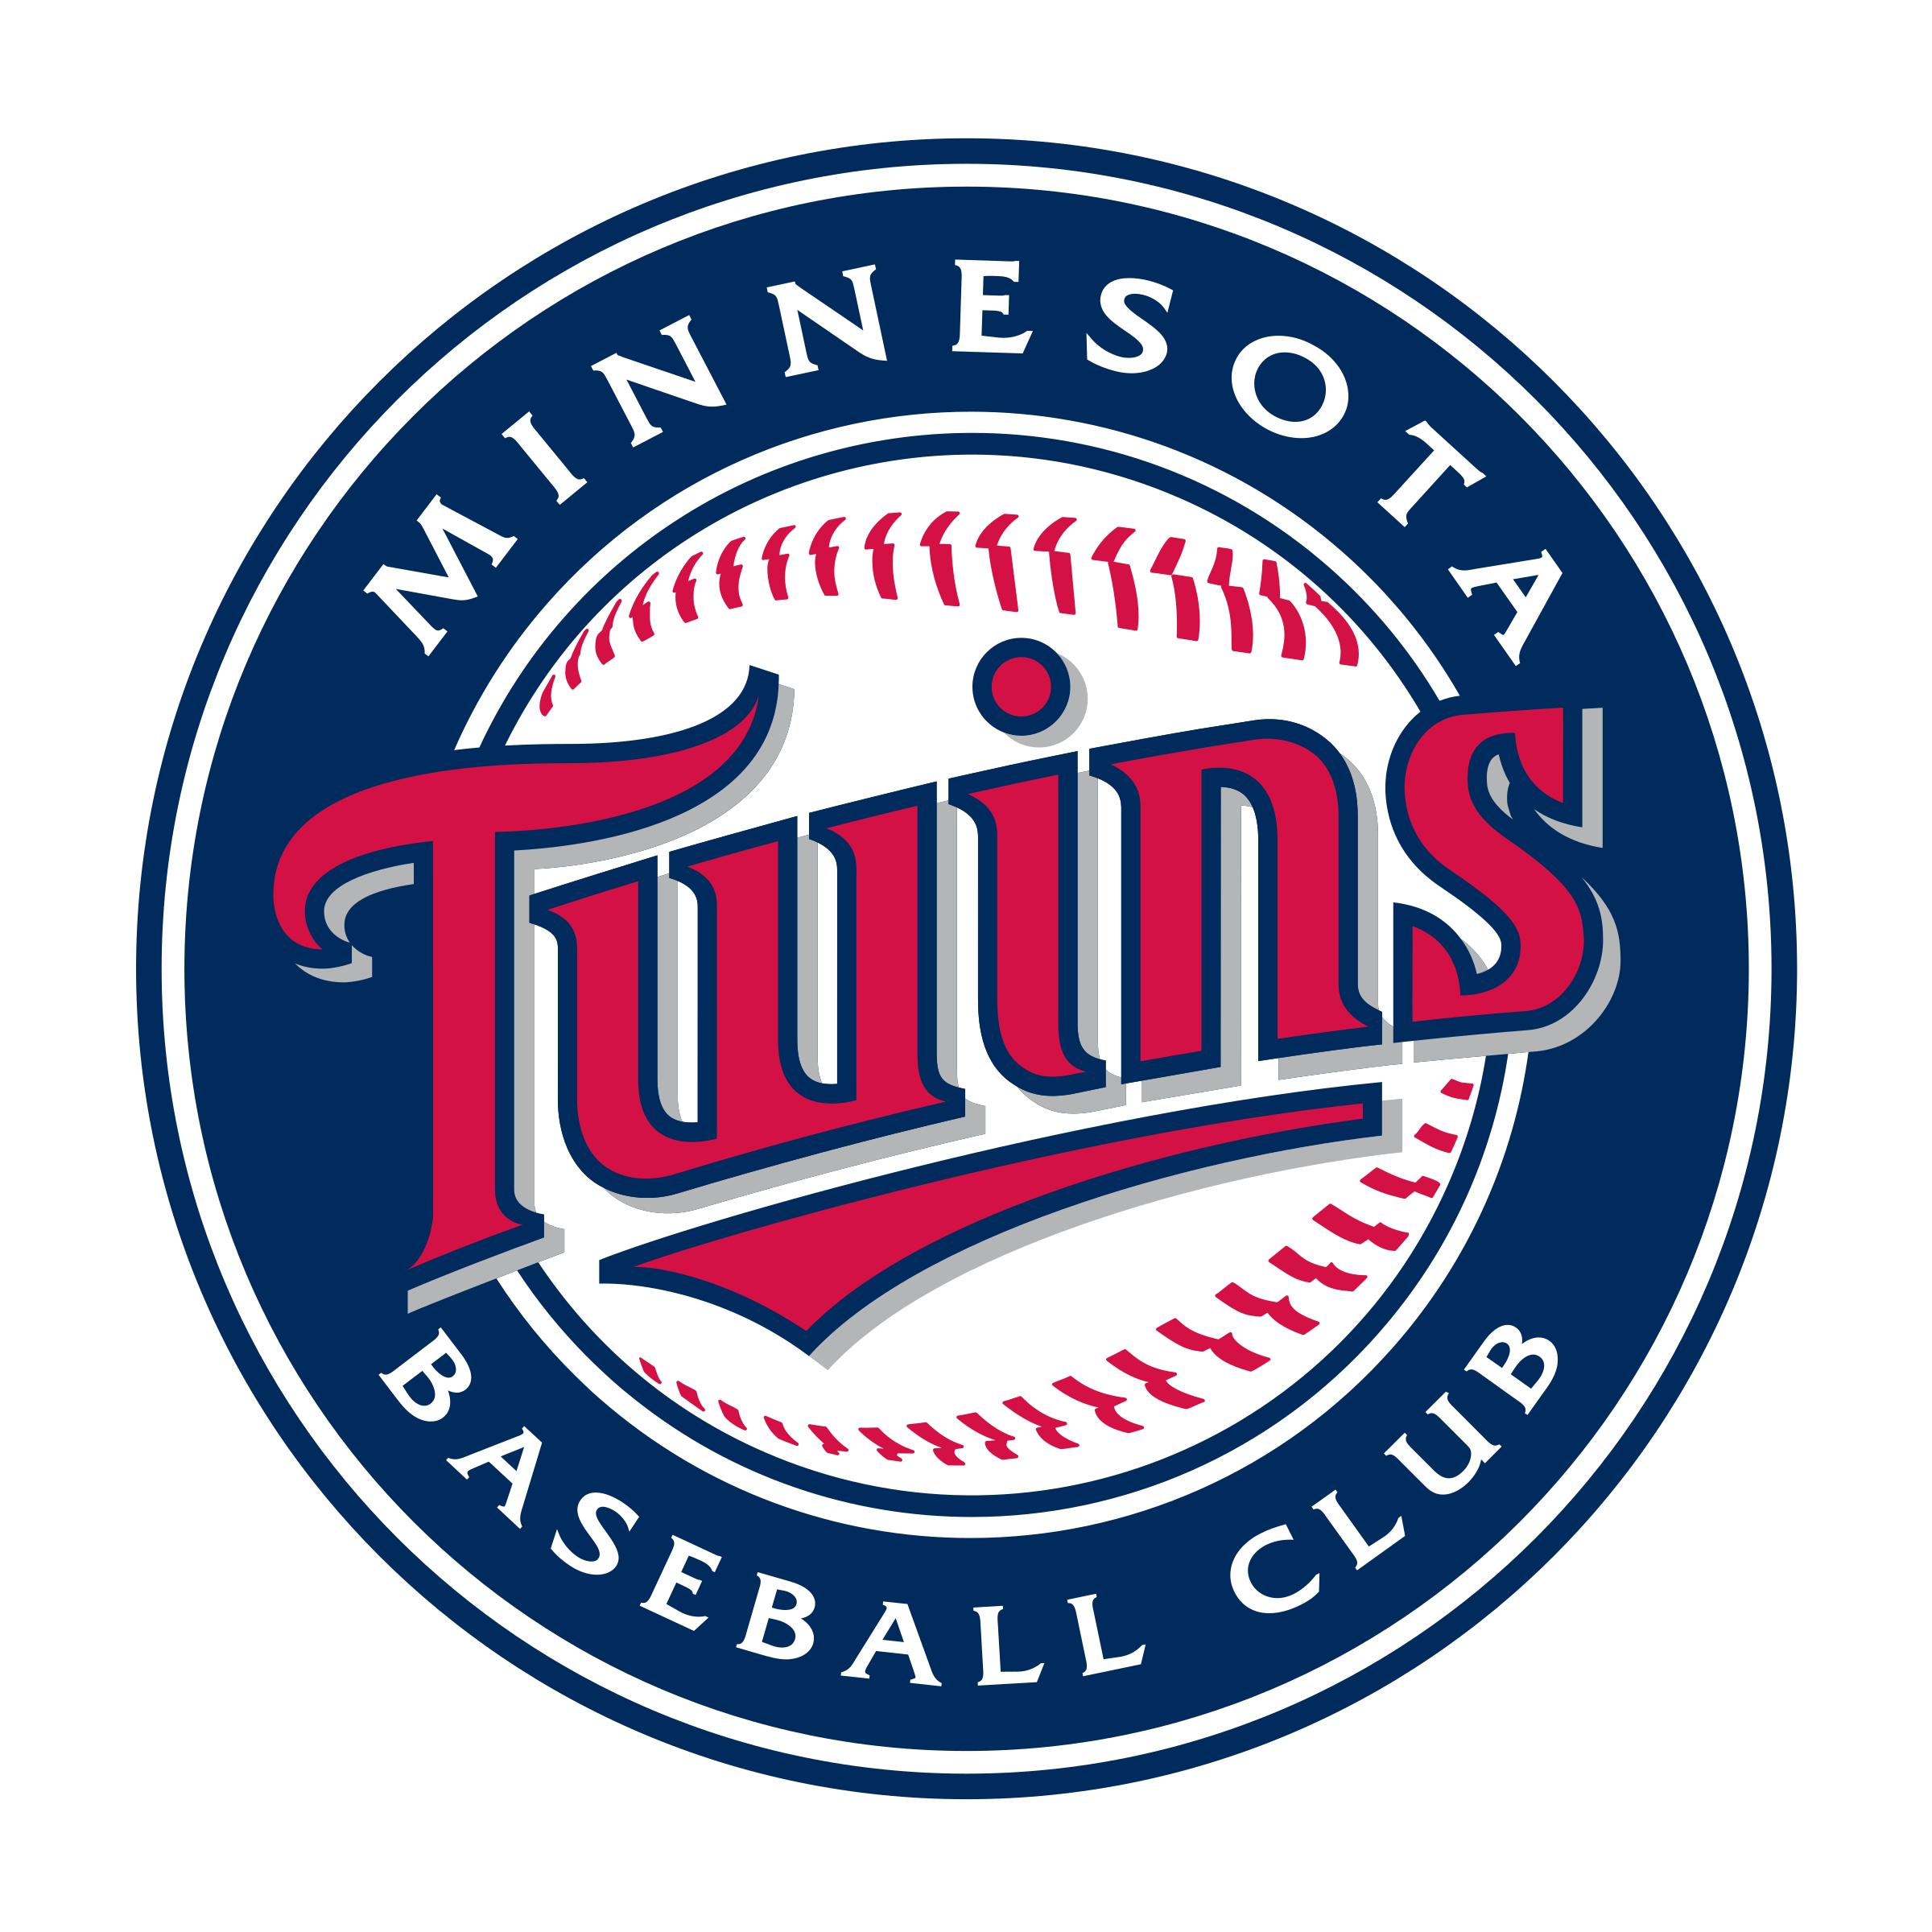 Club vector modern. Minnesota twins logo png